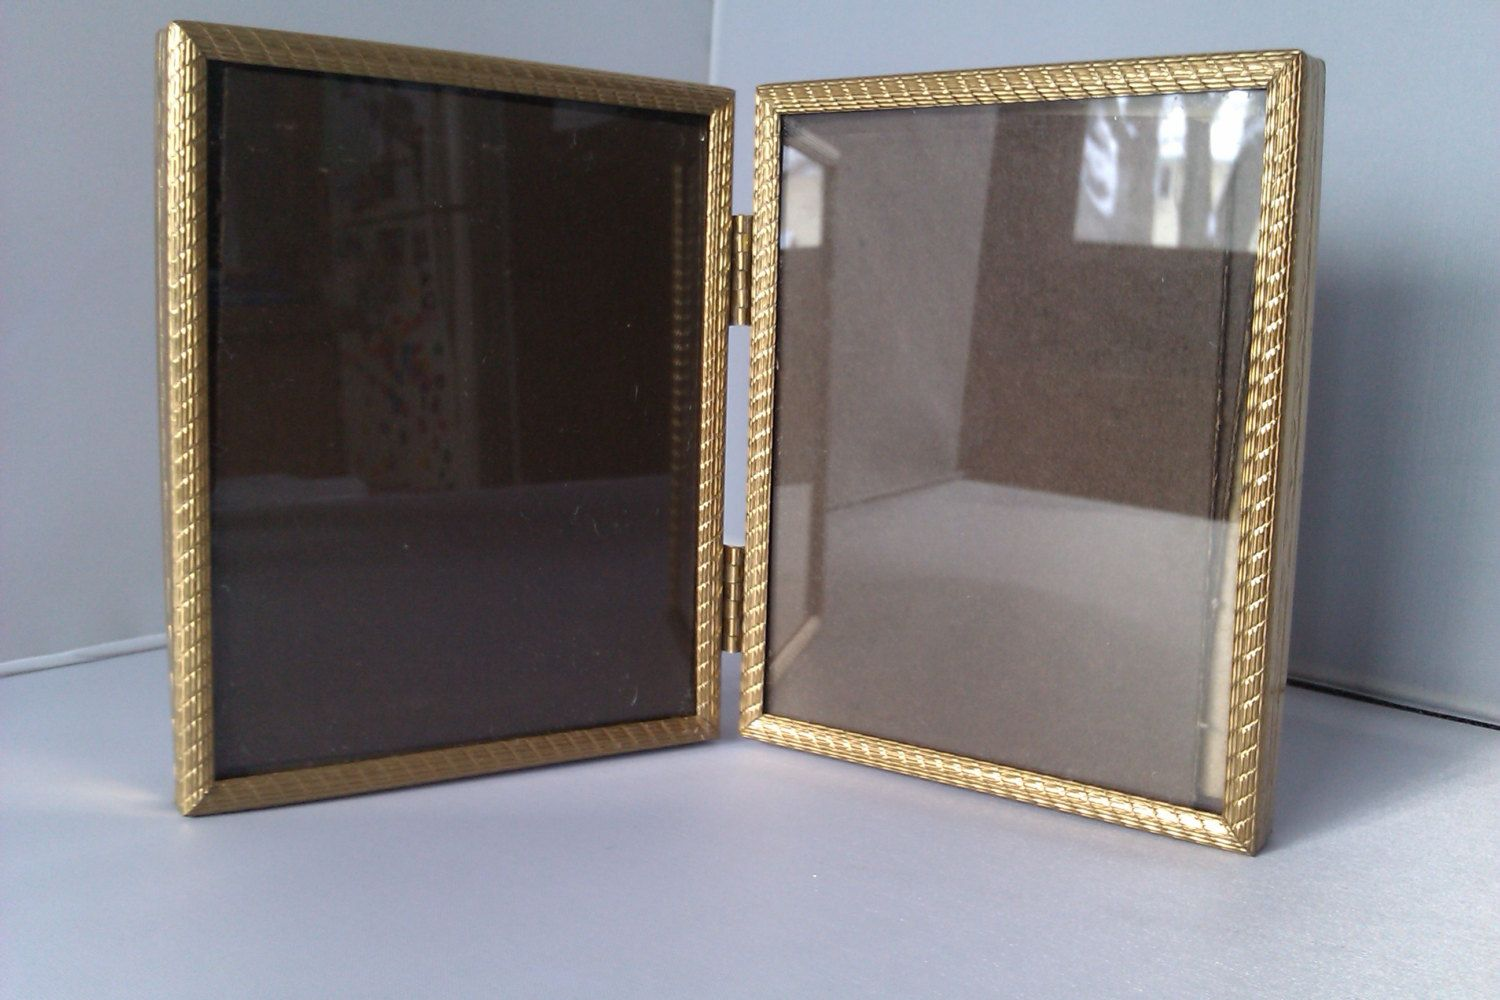 4x5 Hinged Picture Frame Vintage Double Gold Toned Frames | Attic ...